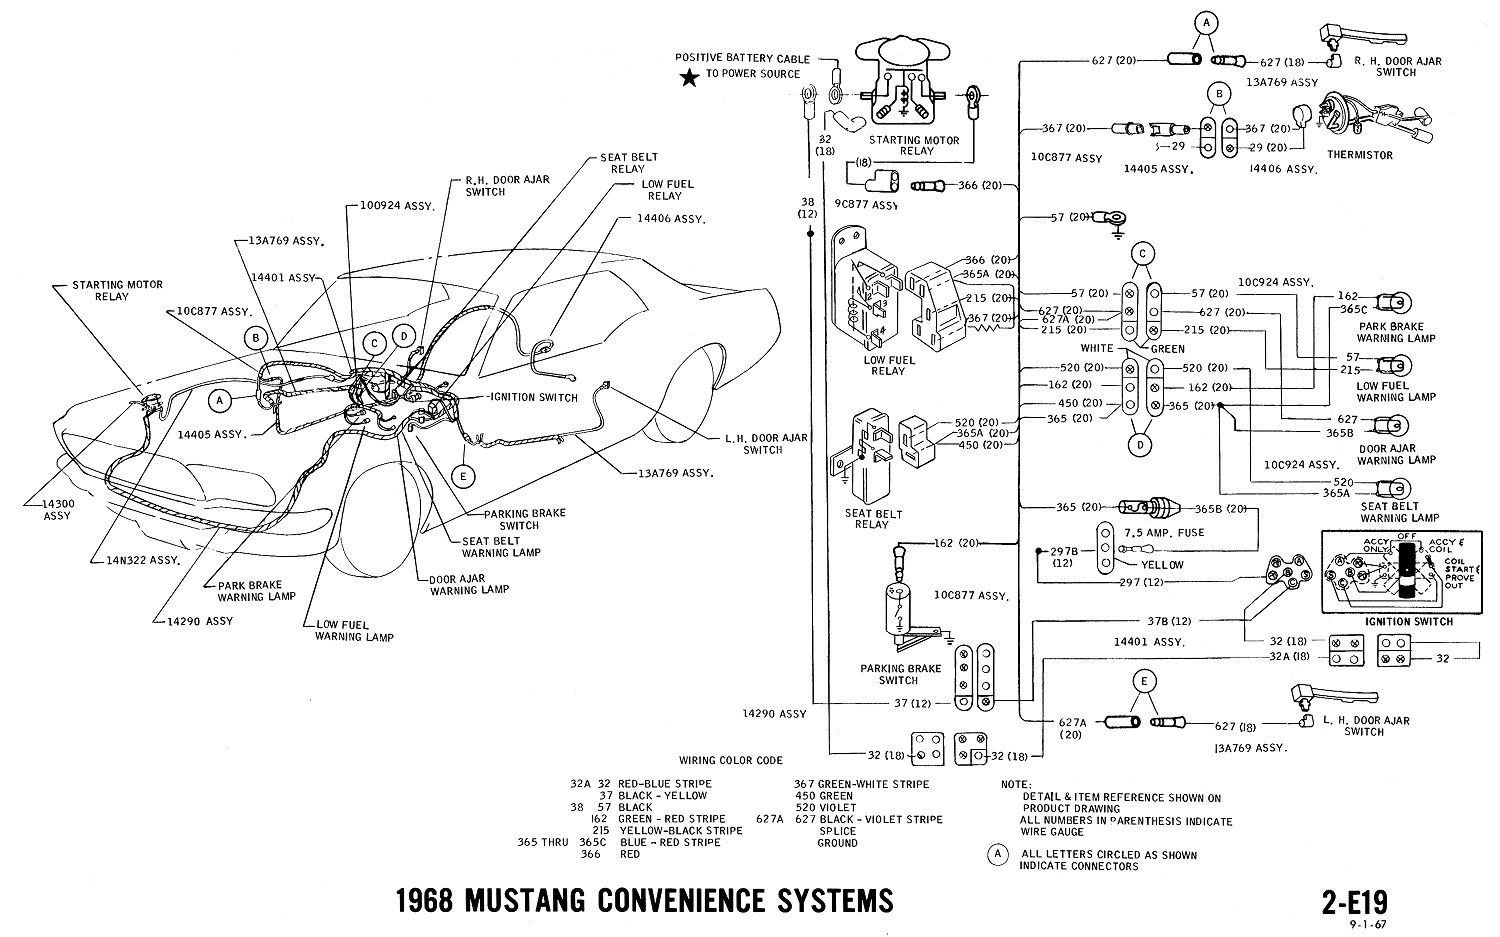 1968 mustang wiring diagram convenience systems 1968 mustang wiring diagrams and vacuum schematics average joe 1969 mustang ignition switch wiring diagram at soozxer.org